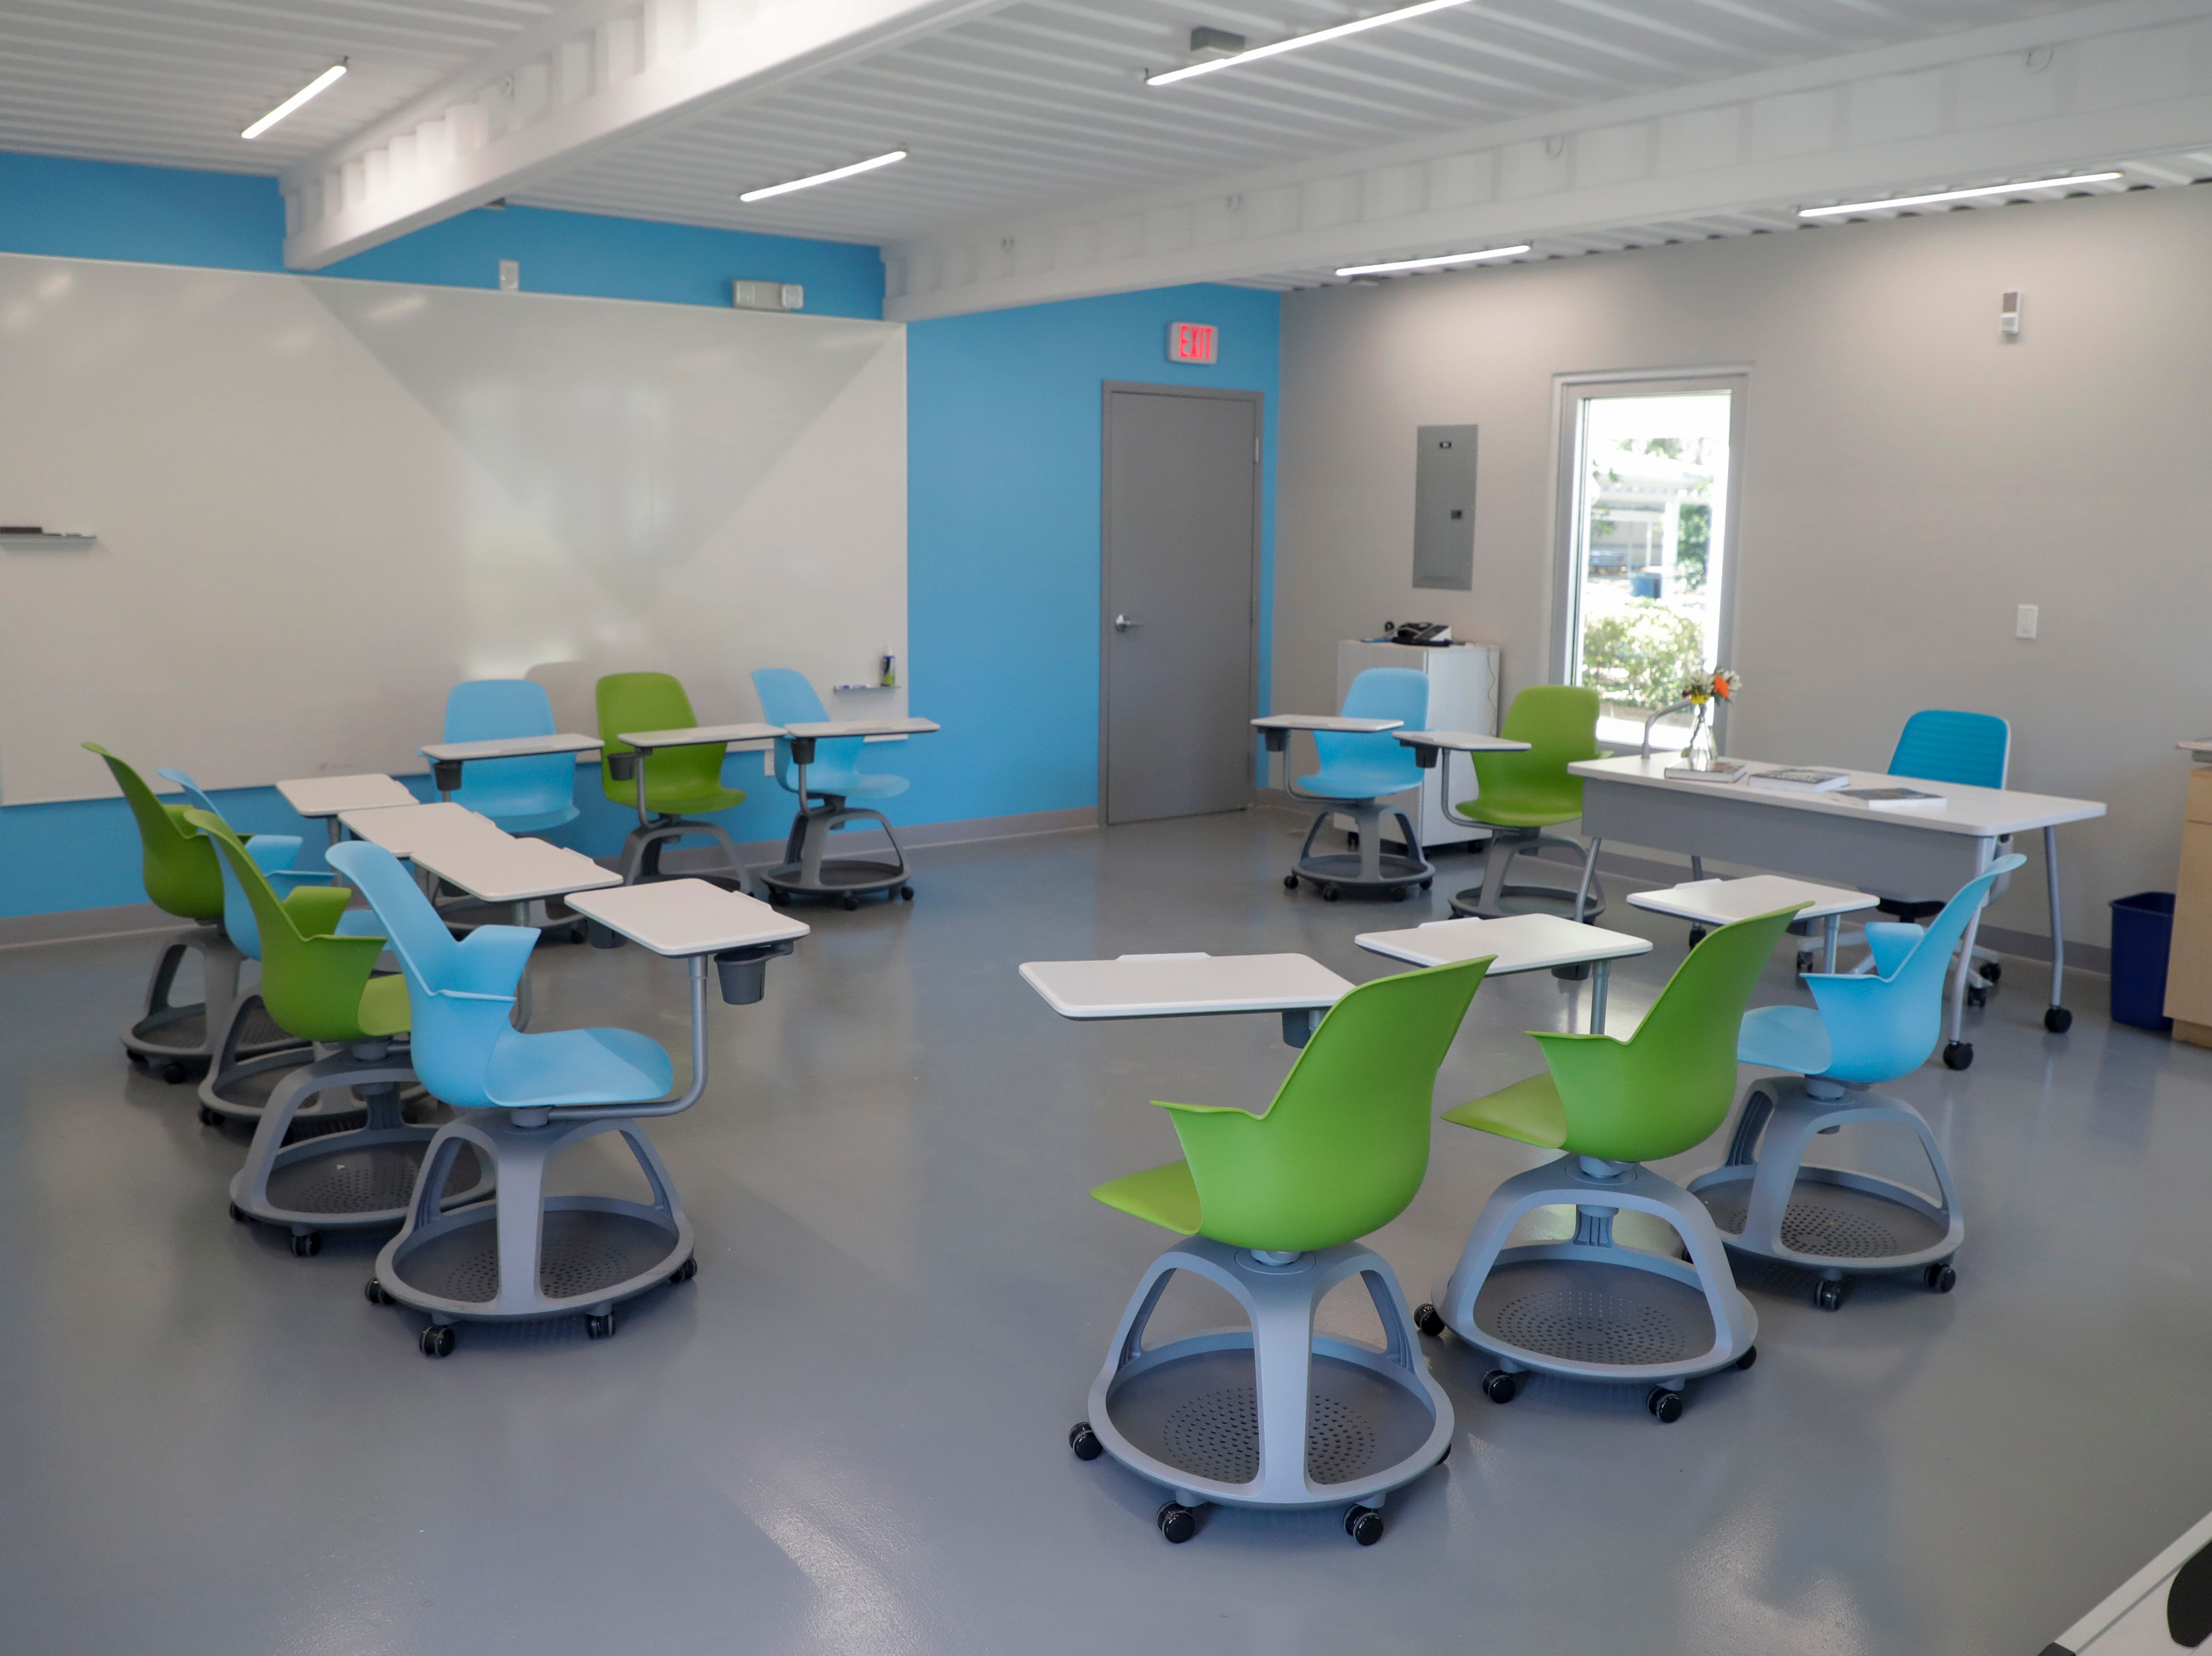 The Marie E. Krafft biomedical research lab is one of three classrooms made from recycled shipping containers in the new Beck Family Research Center on the Maclay School campus Wednesday, May 15, 2019.